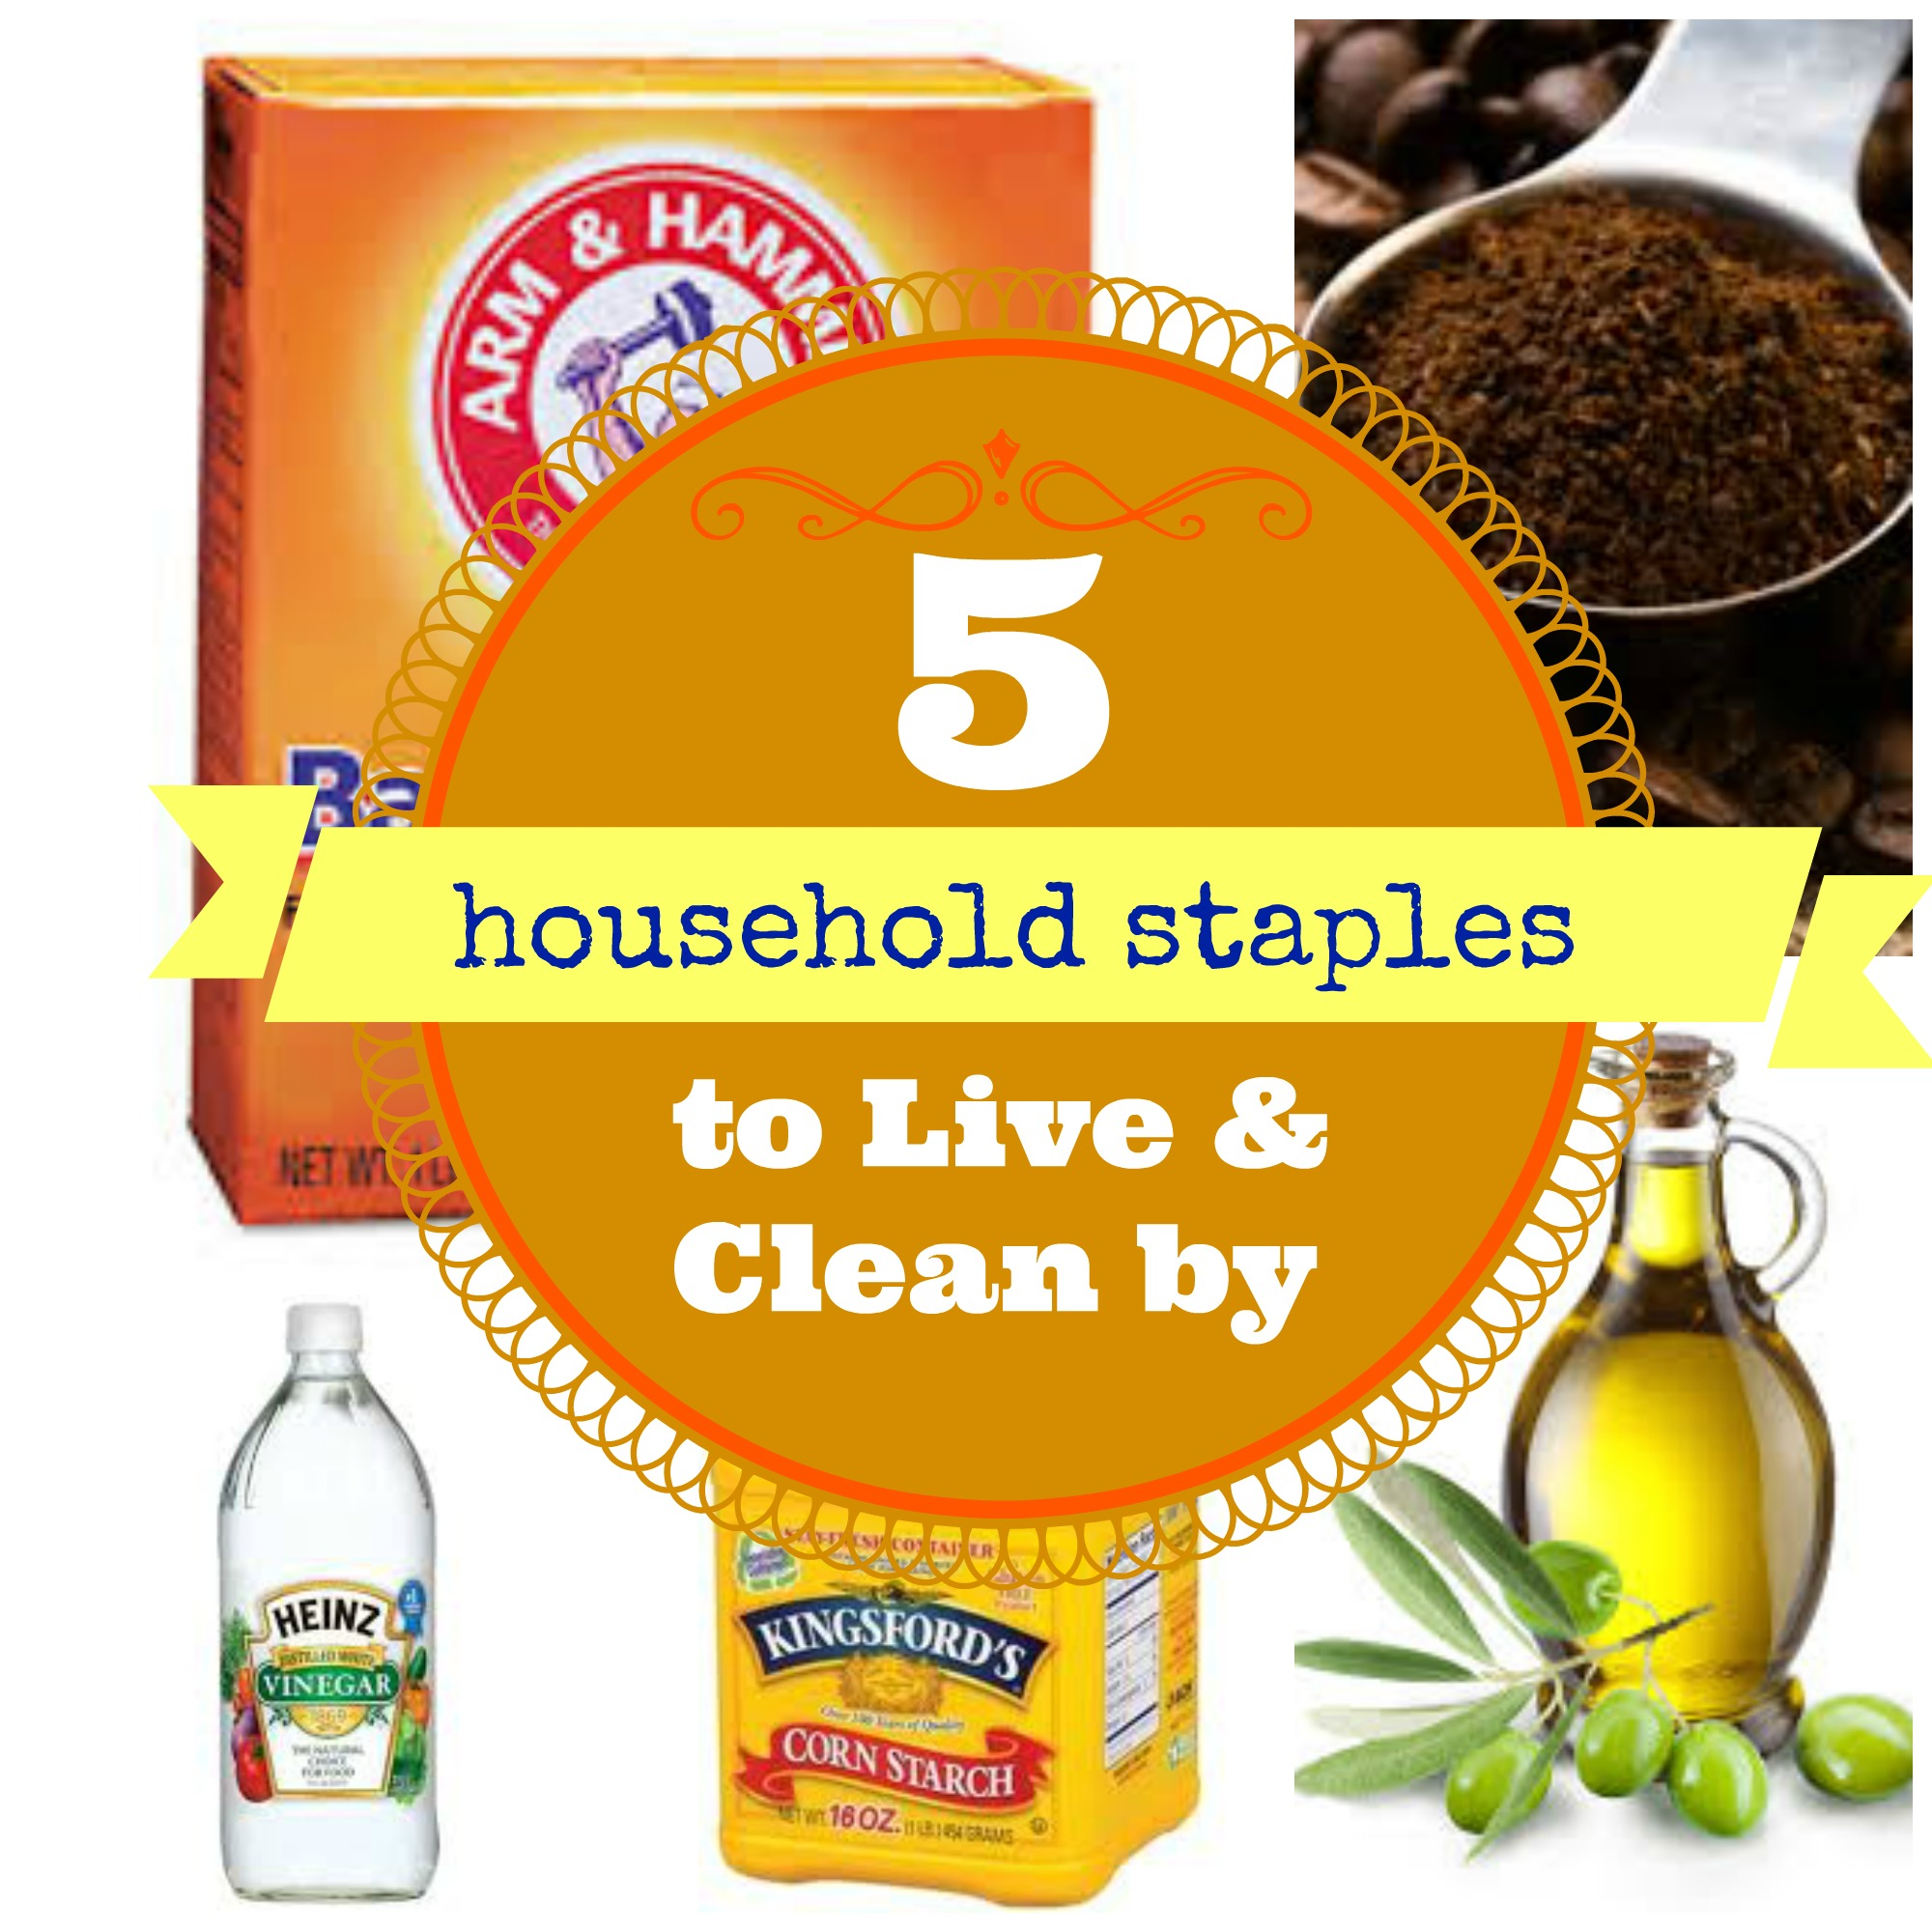 5 Household staples to live and clean by!